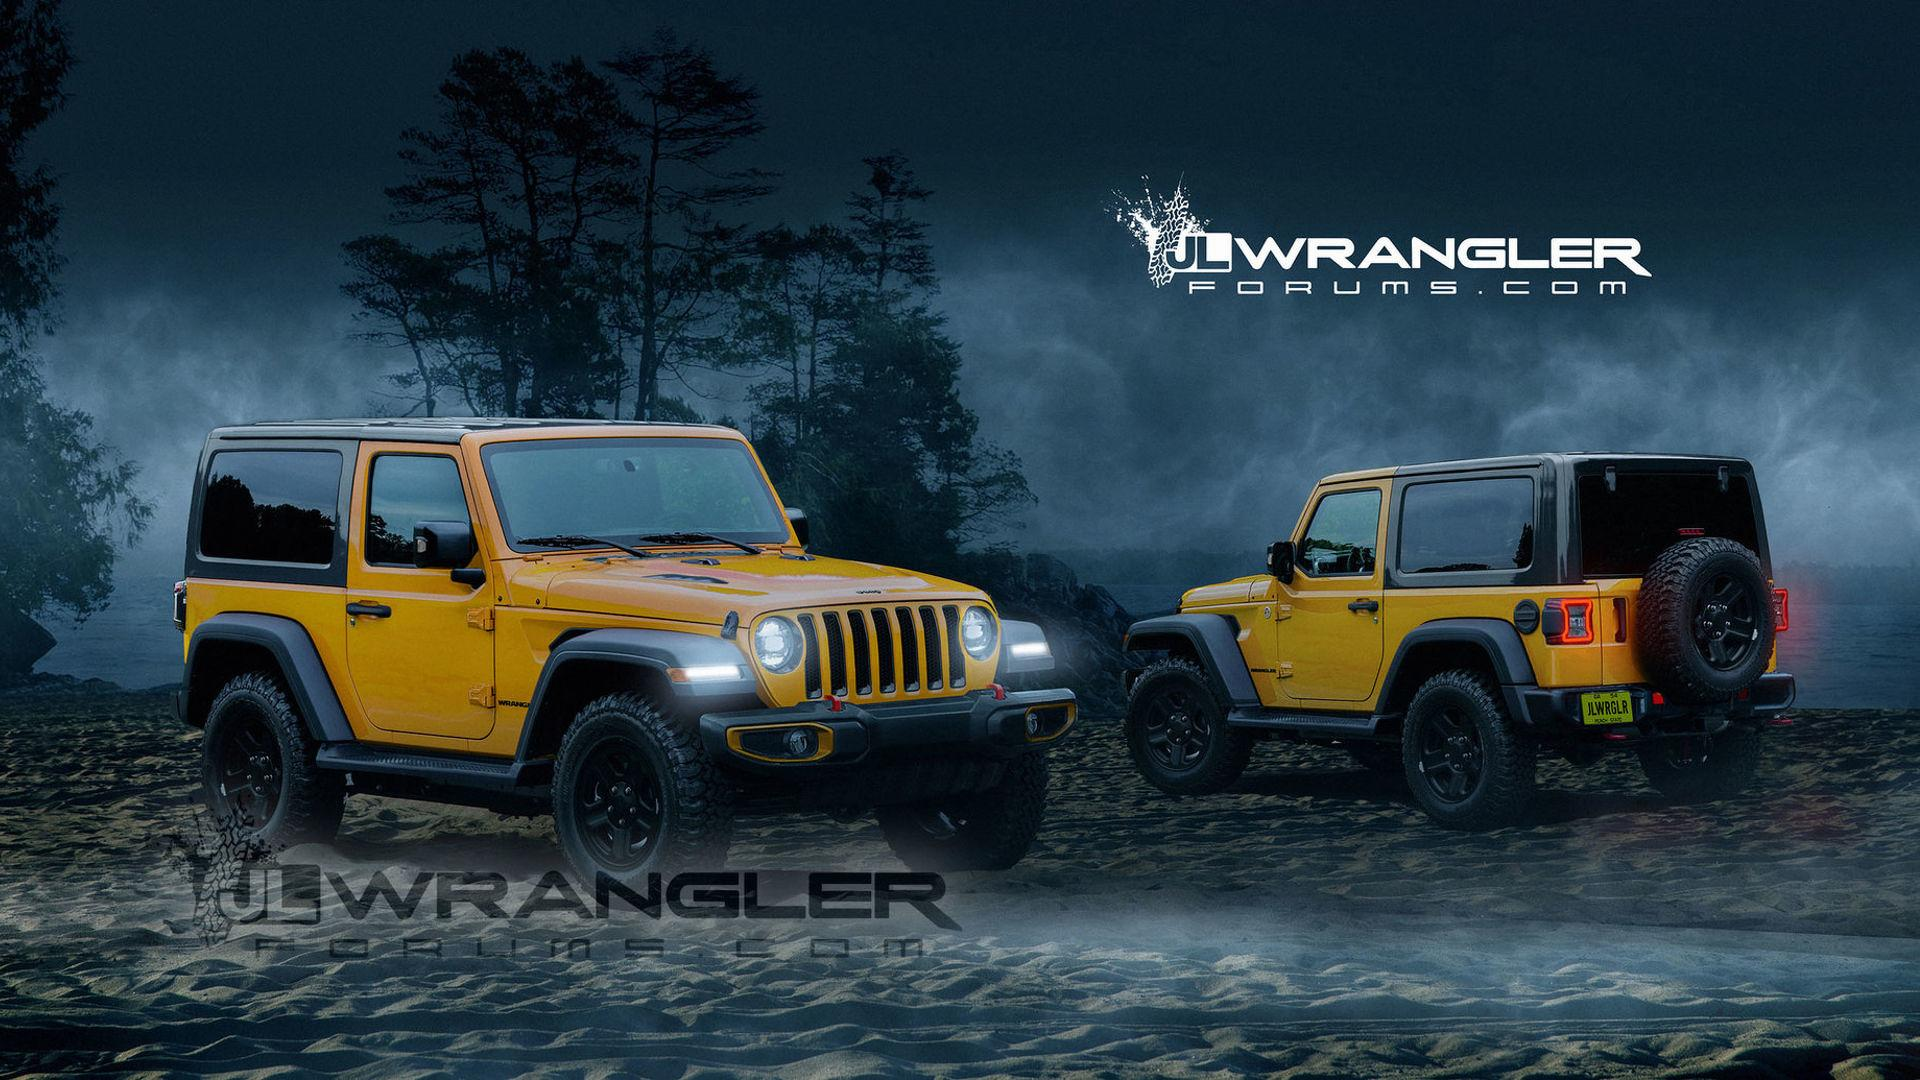 2018 Jeep Wrangler Two Door Rendered With New Cues